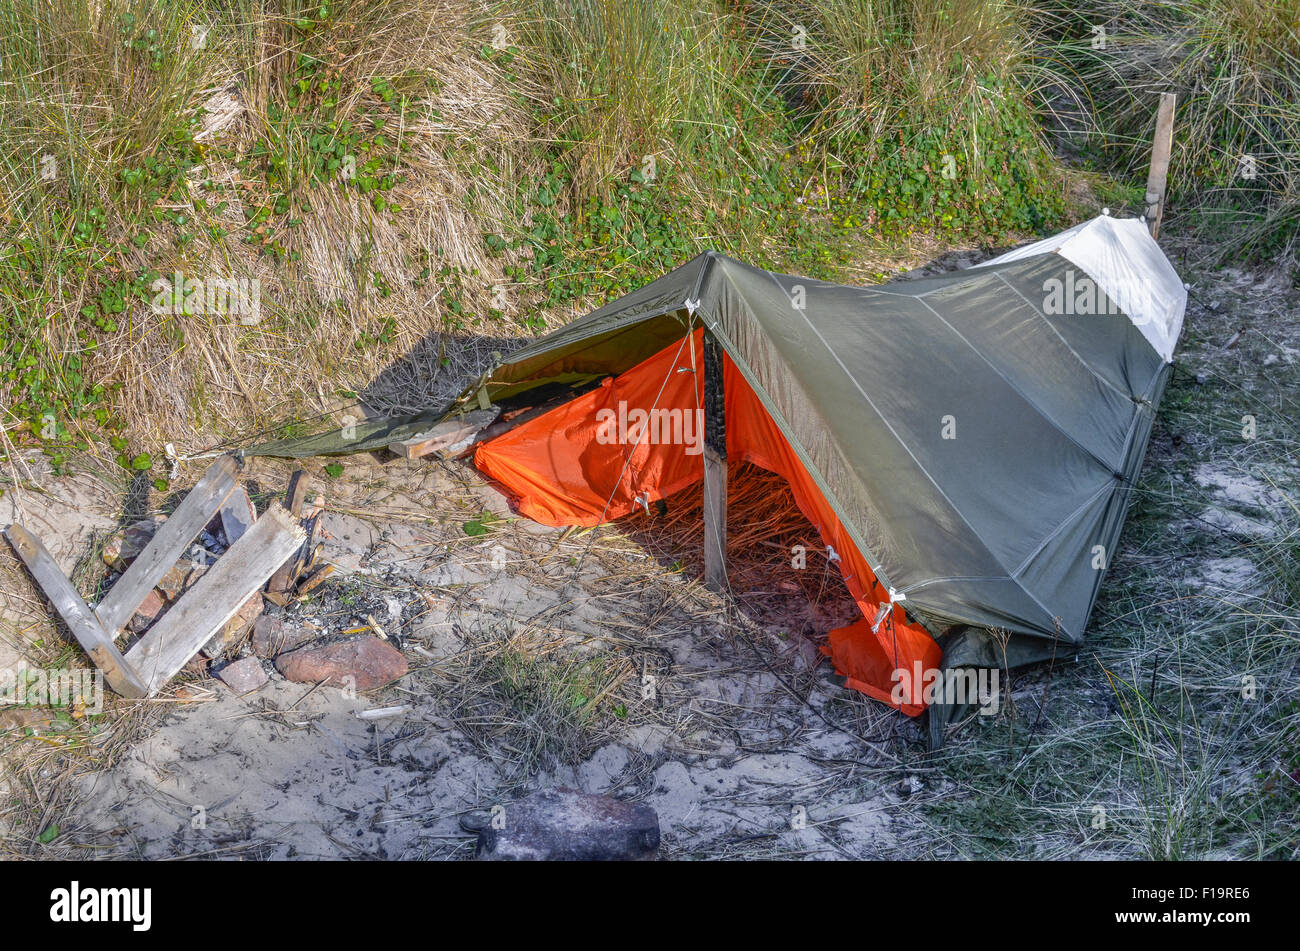 Temporary Shelters Survival : Survival concept shelter constructed of